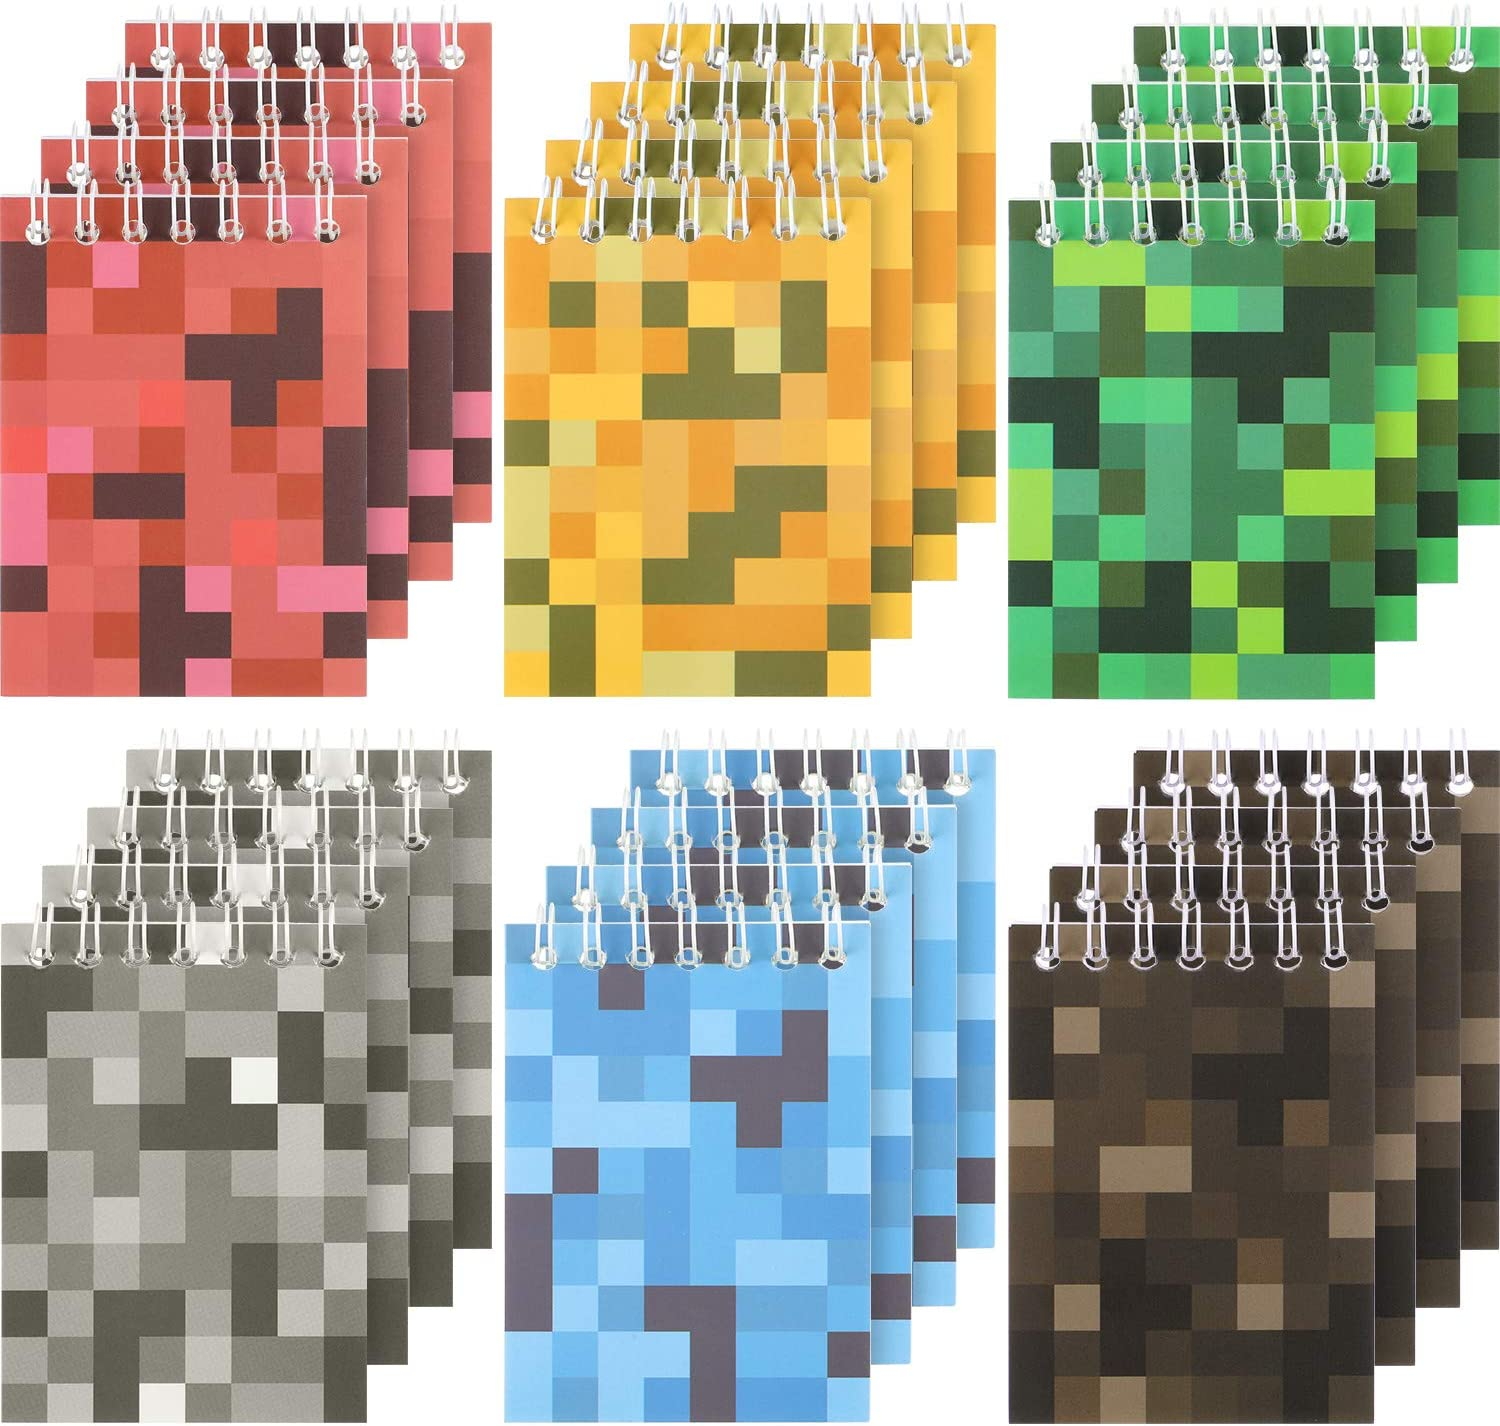 48 Pieces Mini Pixel Notepads Pixelated Spiral Notebook Miner Crafting Style Notebooks for Pixelated Party Supplies, Mining Theme Party Favors